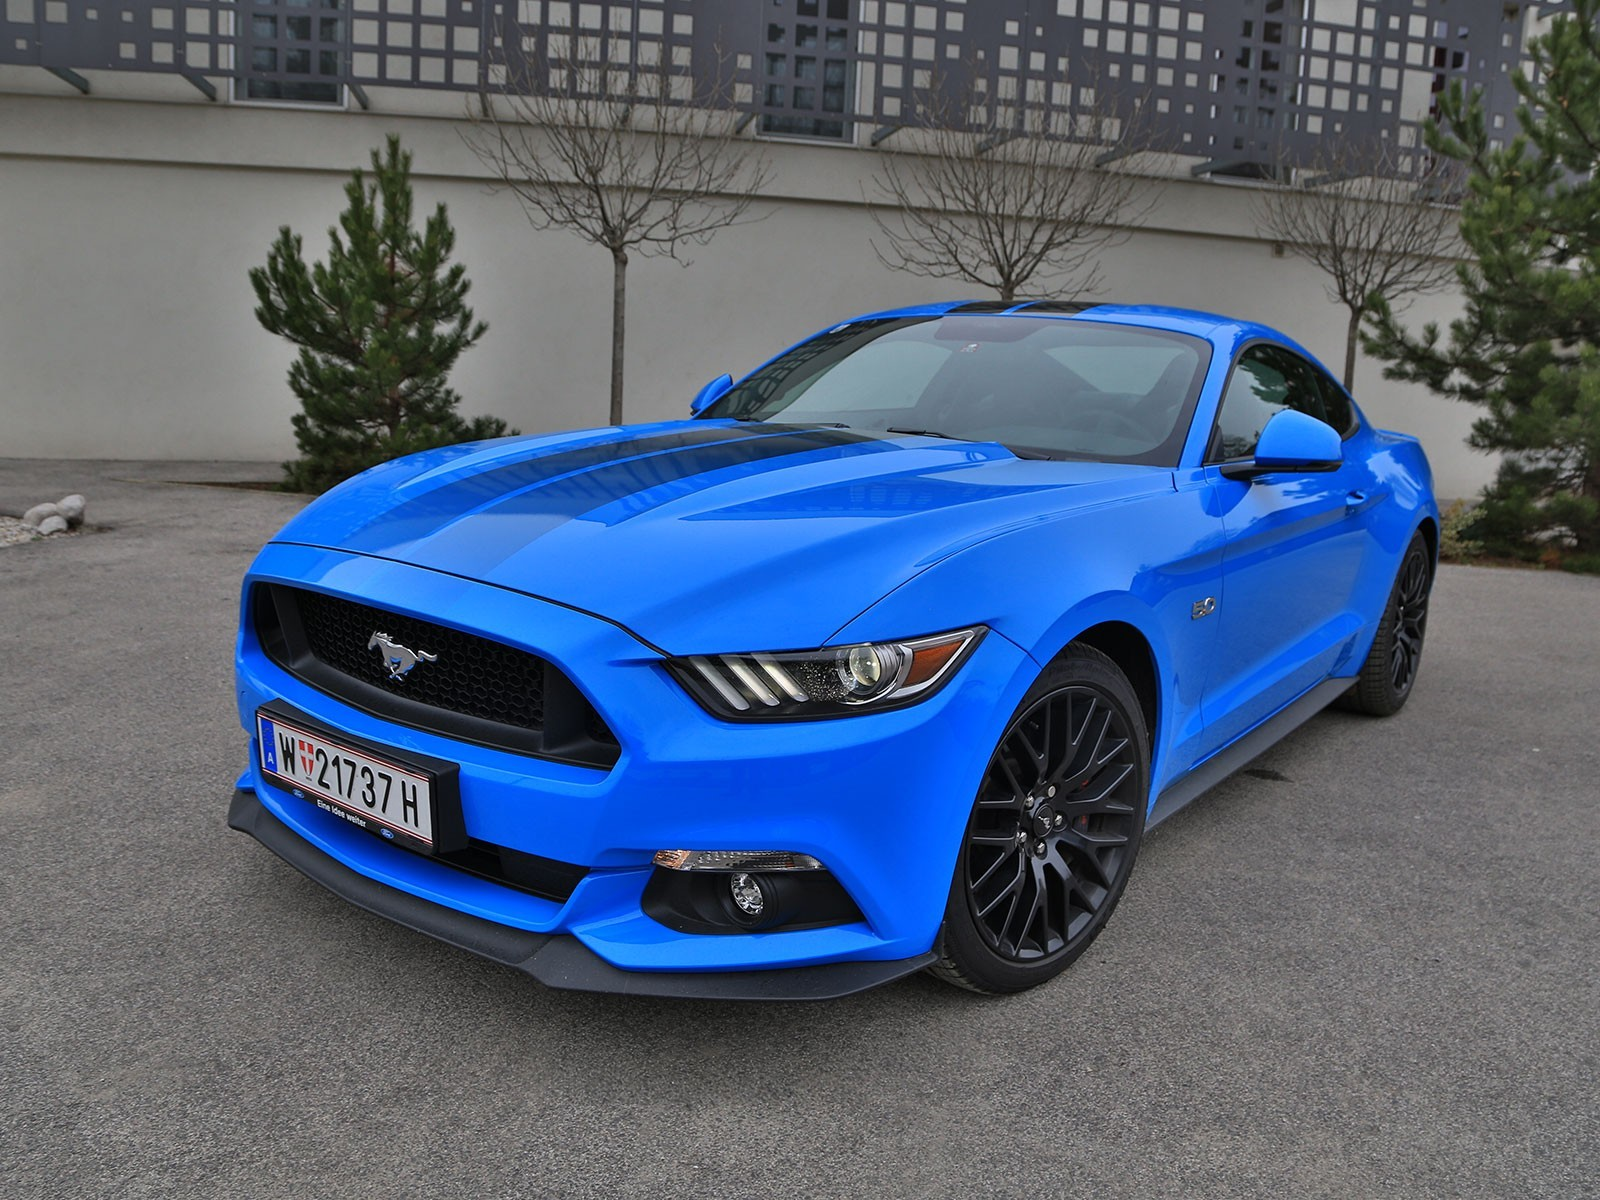 foto ford mustang fastback 5 0 gt blue edition testbericht vom artikel ford mustang 5 0. Black Bedroom Furniture Sets. Home Design Ideas